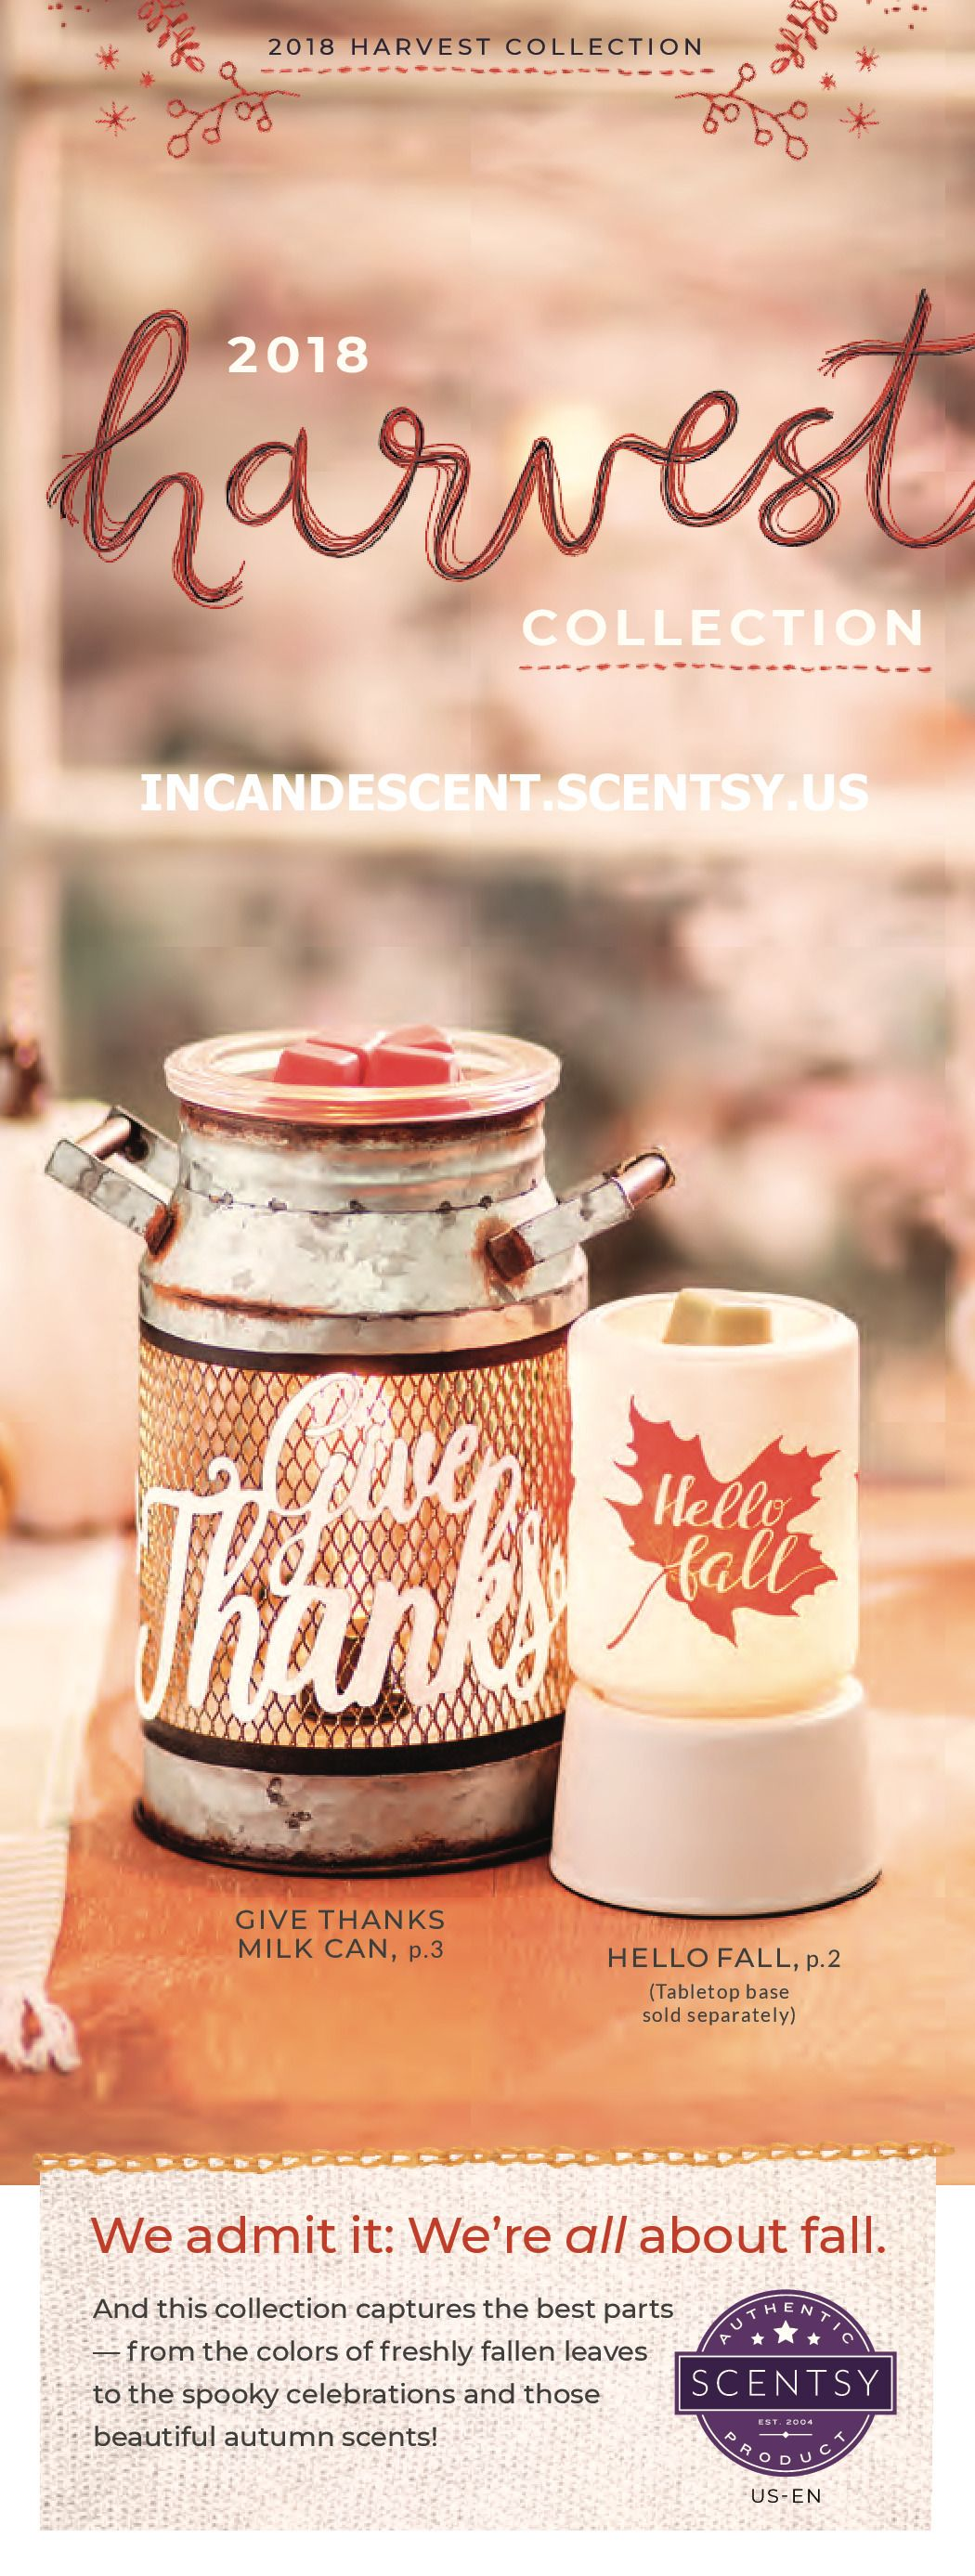 SCENTSY HALLOWEEN HARVEST 2018 COLLECTION Scentsy, Fall